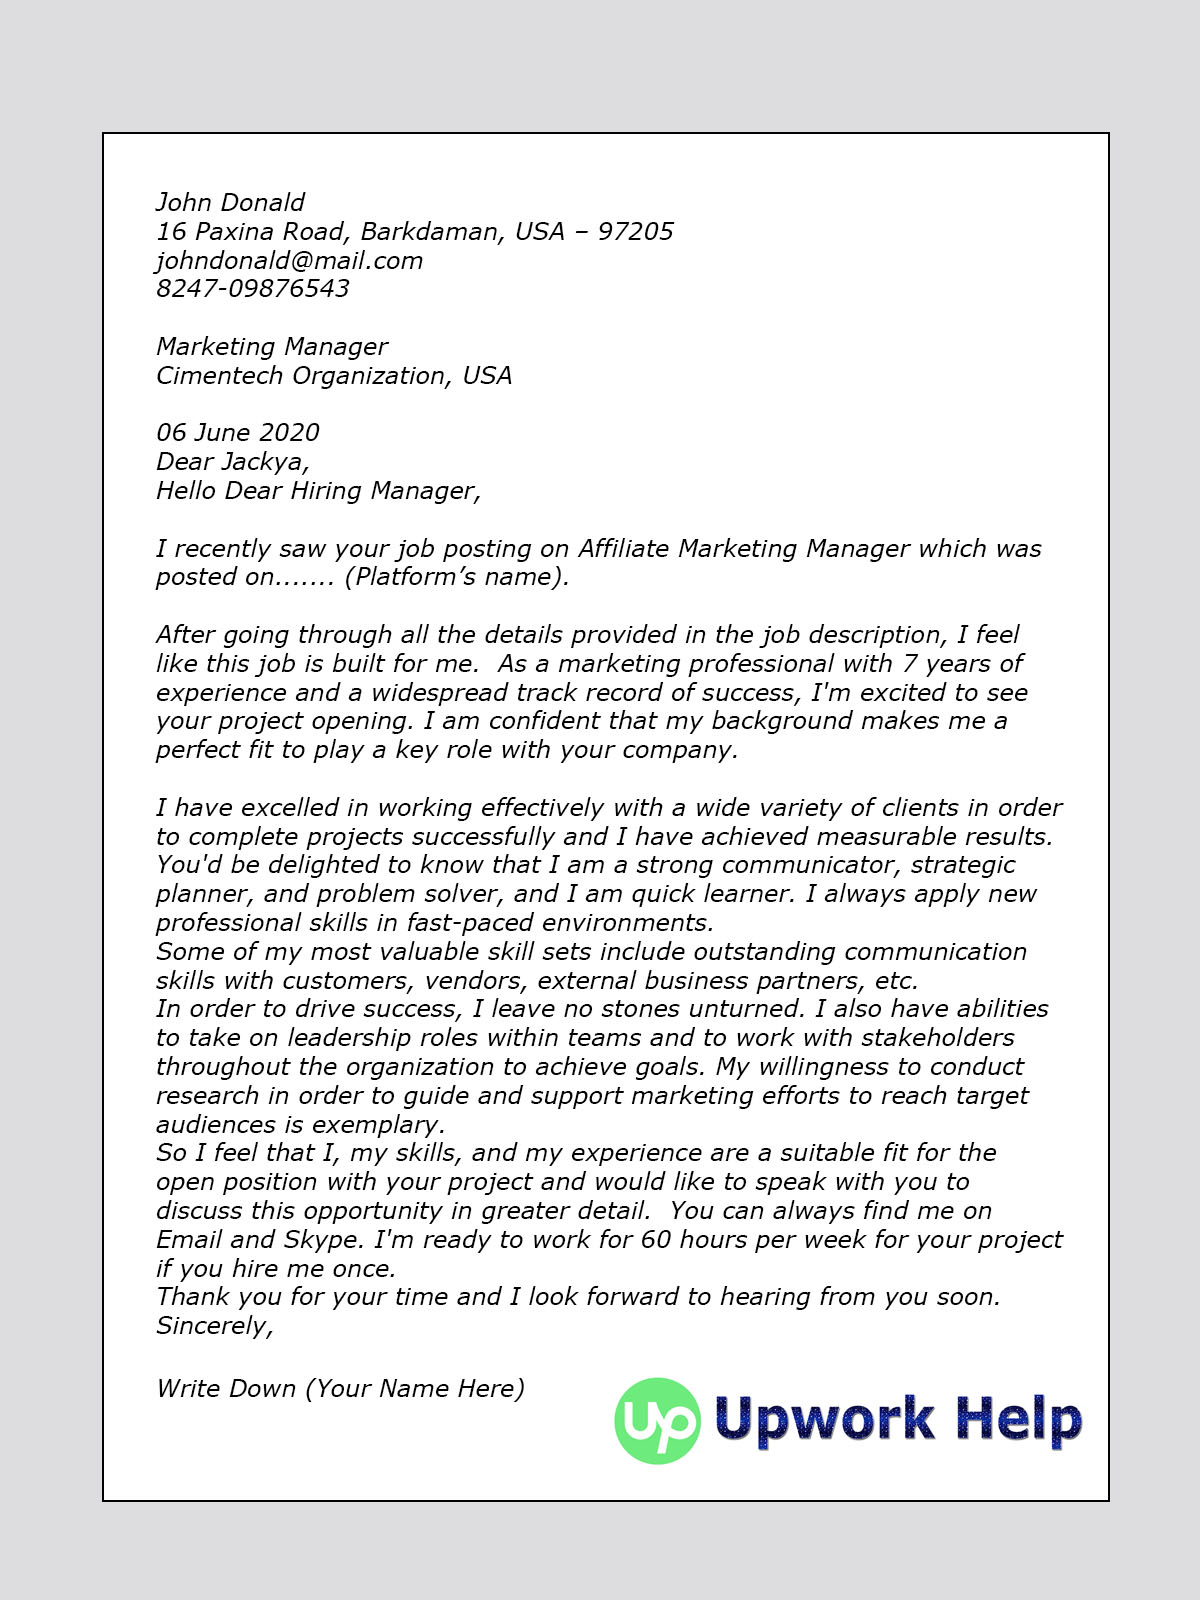 Track Worker Cover Letter Upwork Cover Letter Sample For Affiliate Marketing Amazon